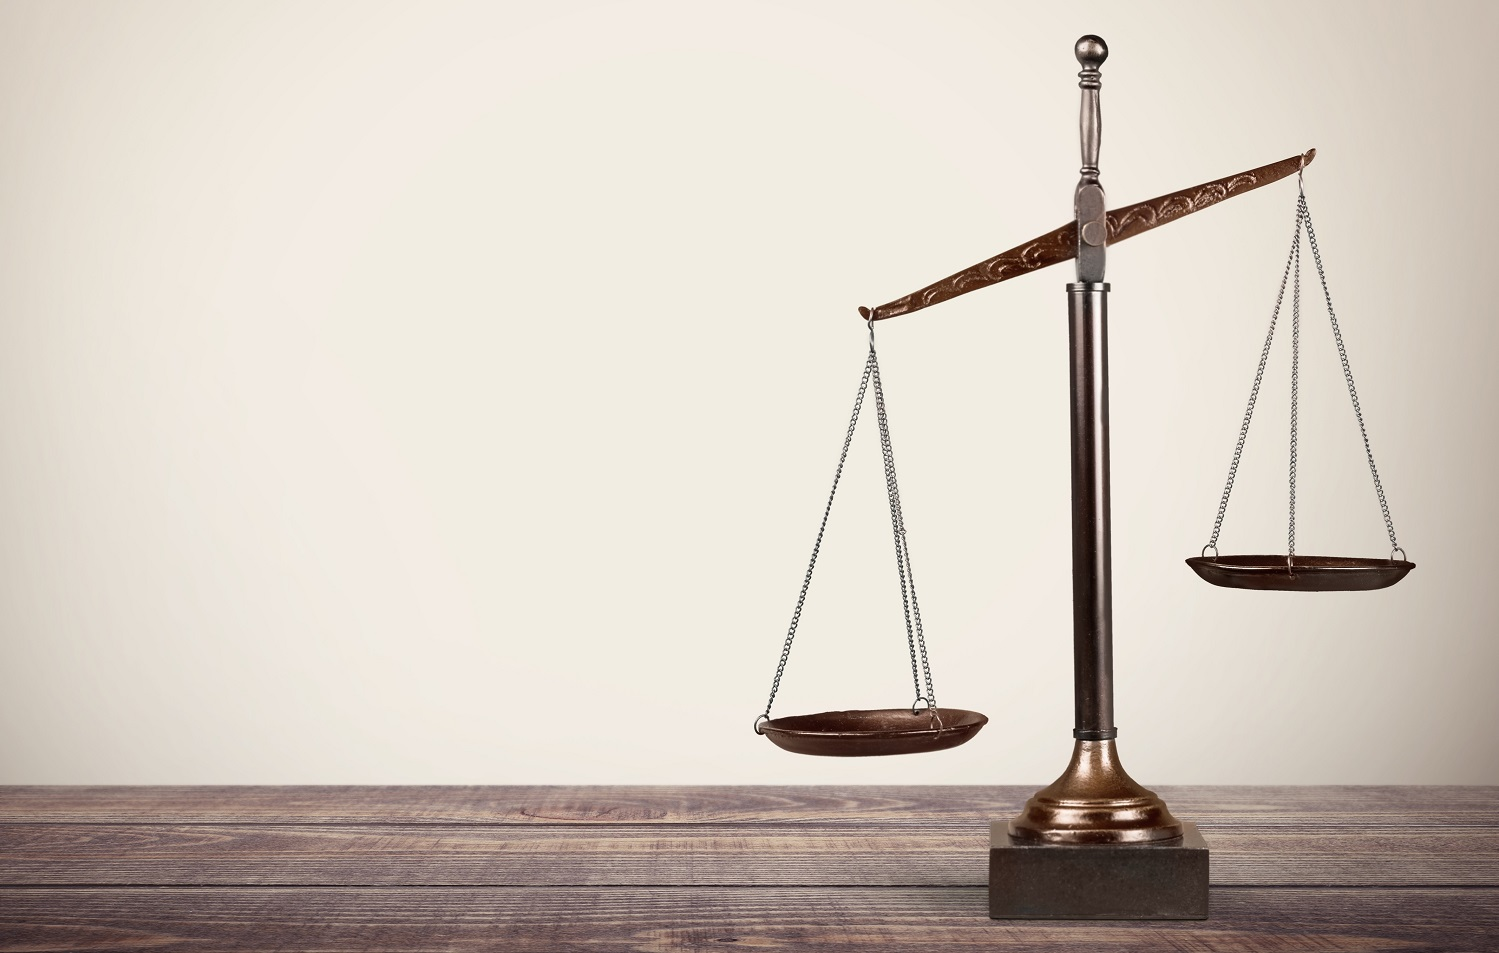 Lawyer. Law scales on table in front black background. Symbol of justice